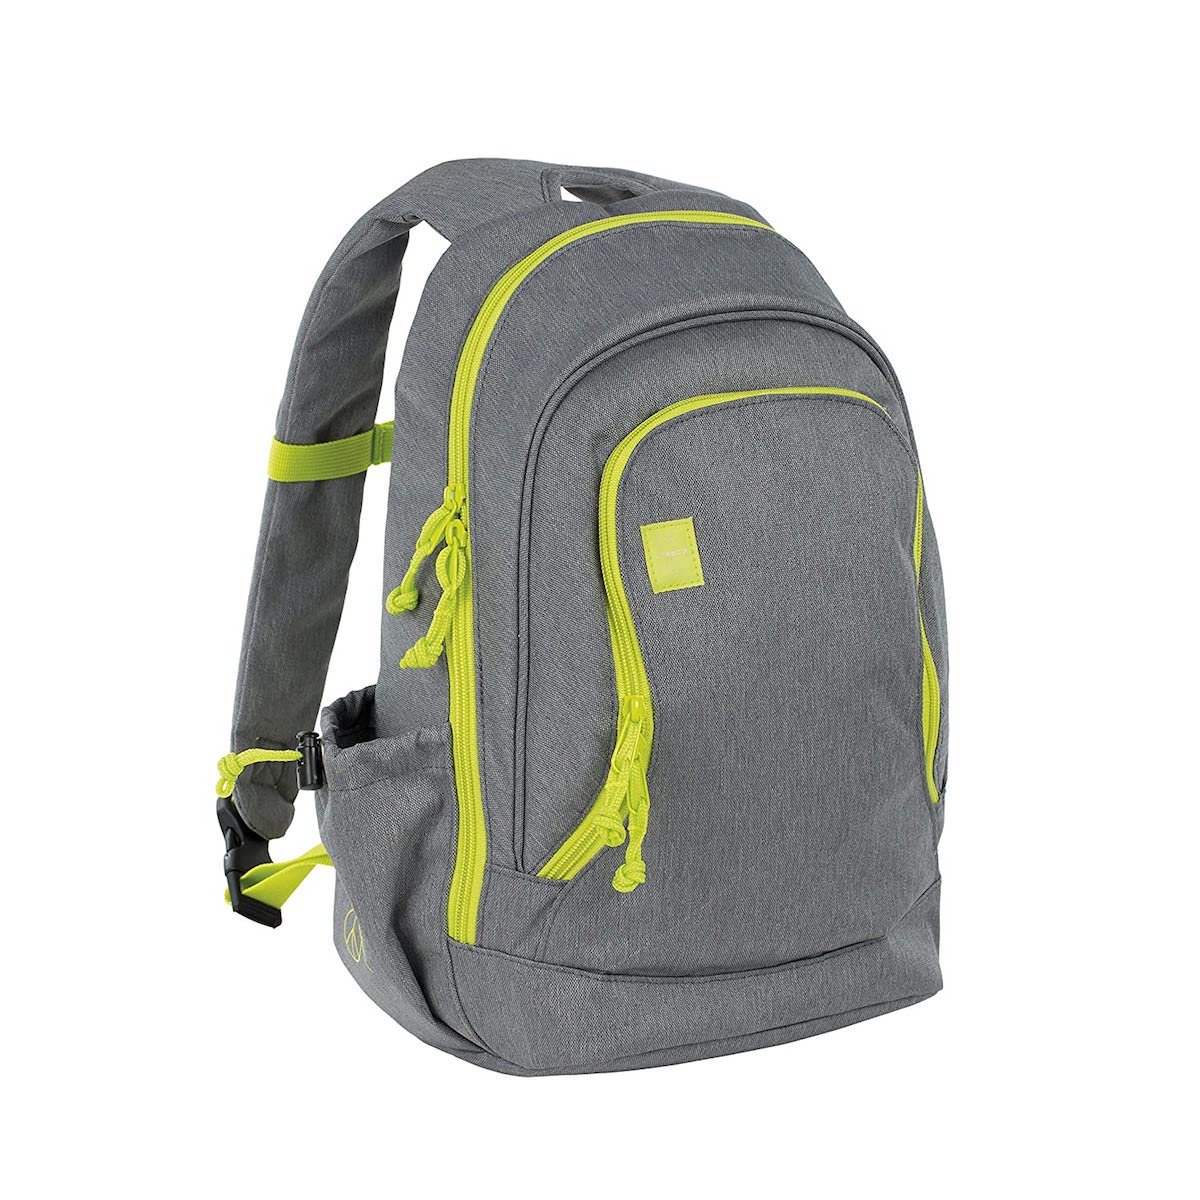 Lassig About Friends Big Backpack - Grey Melange